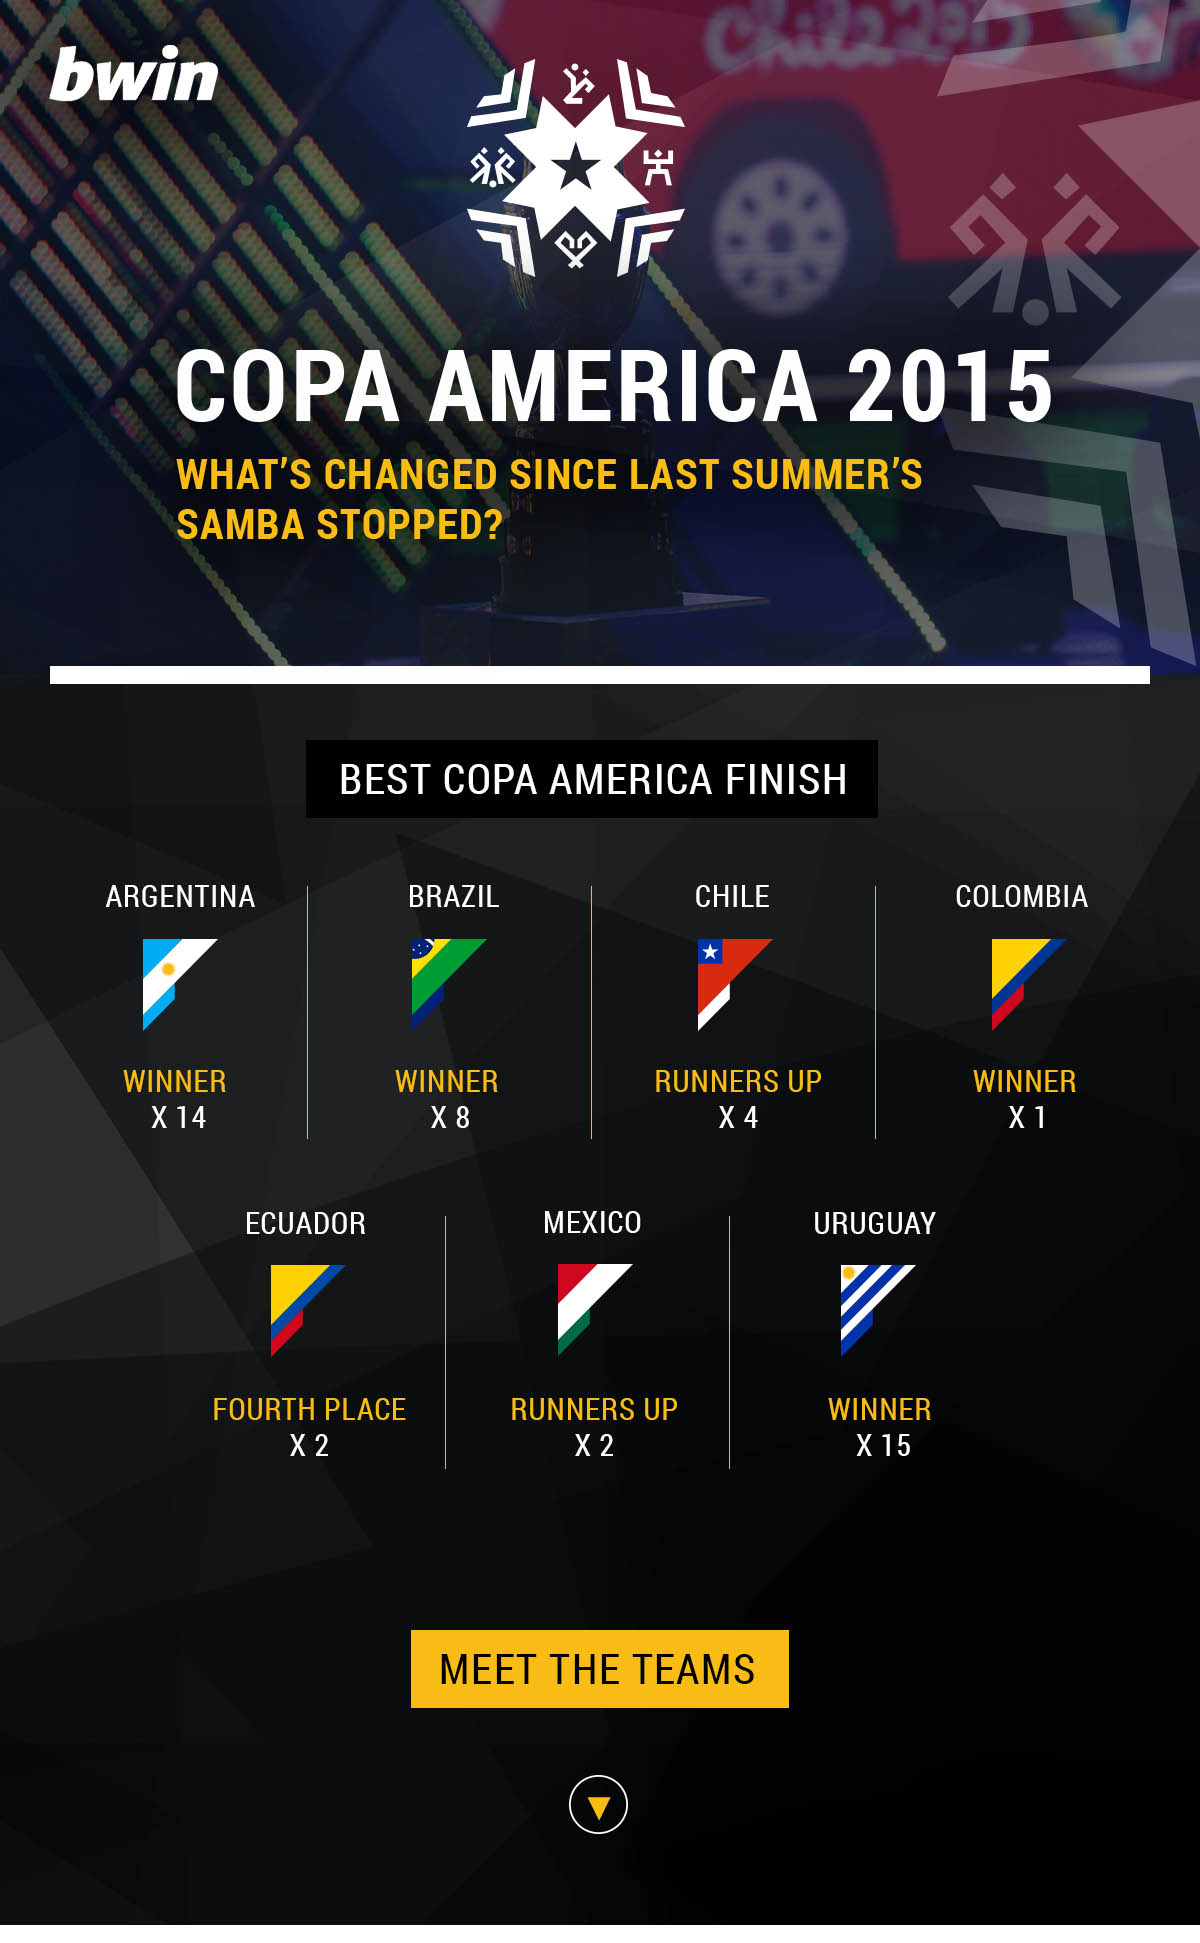 Copa America 2015 Infographic Part One